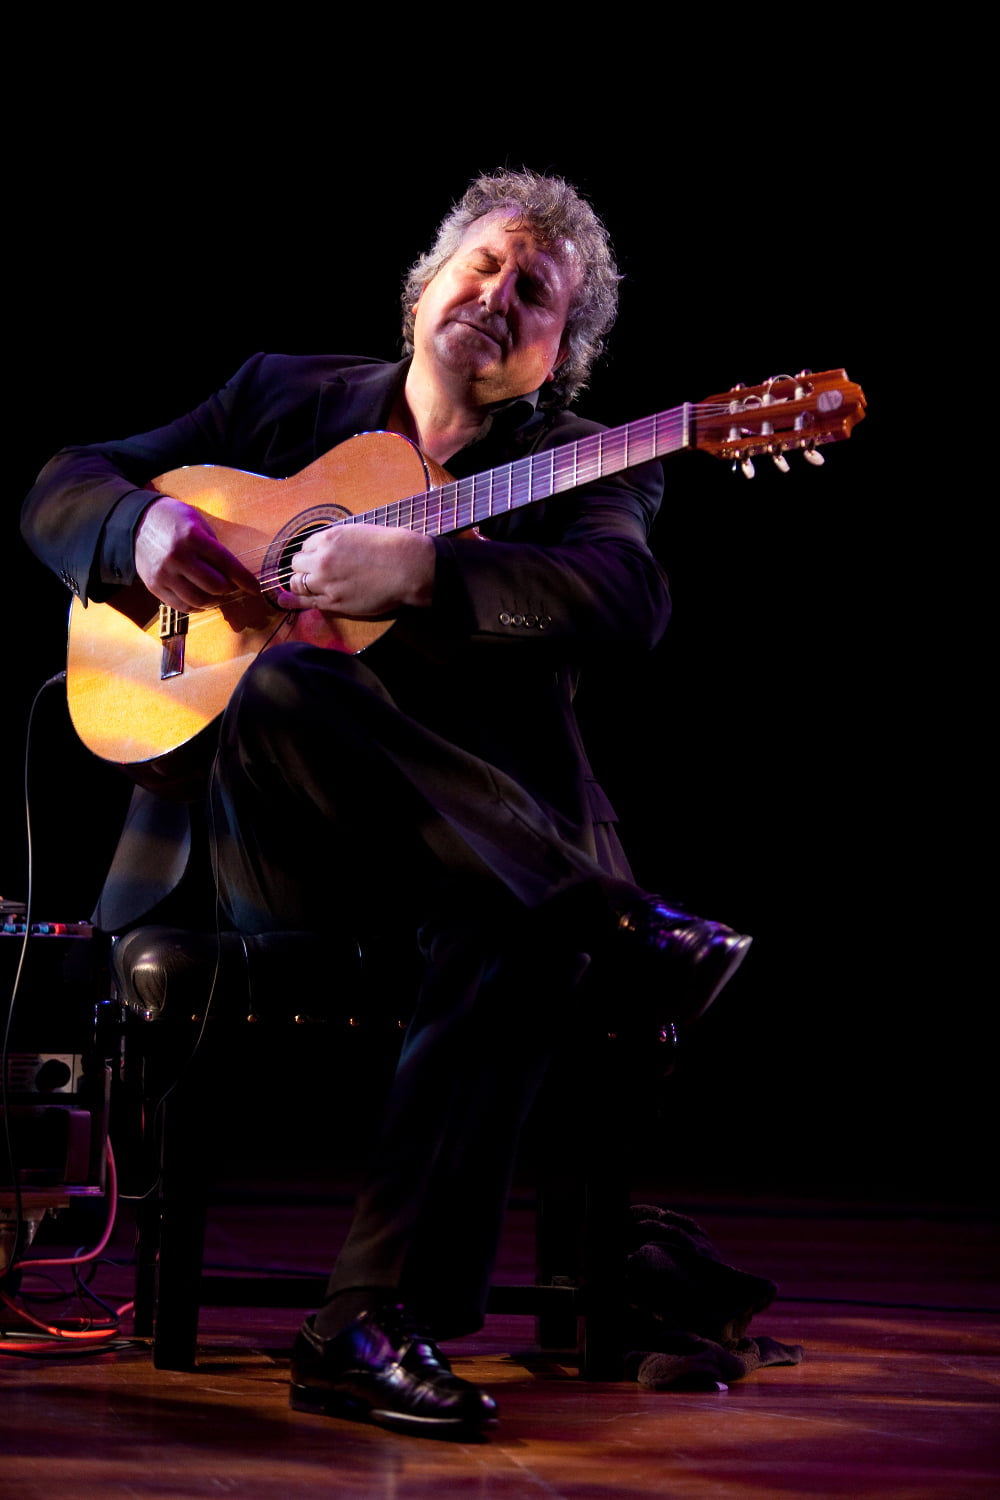 Eduardo Niebla in Concert with Matthew Robinson on guitar